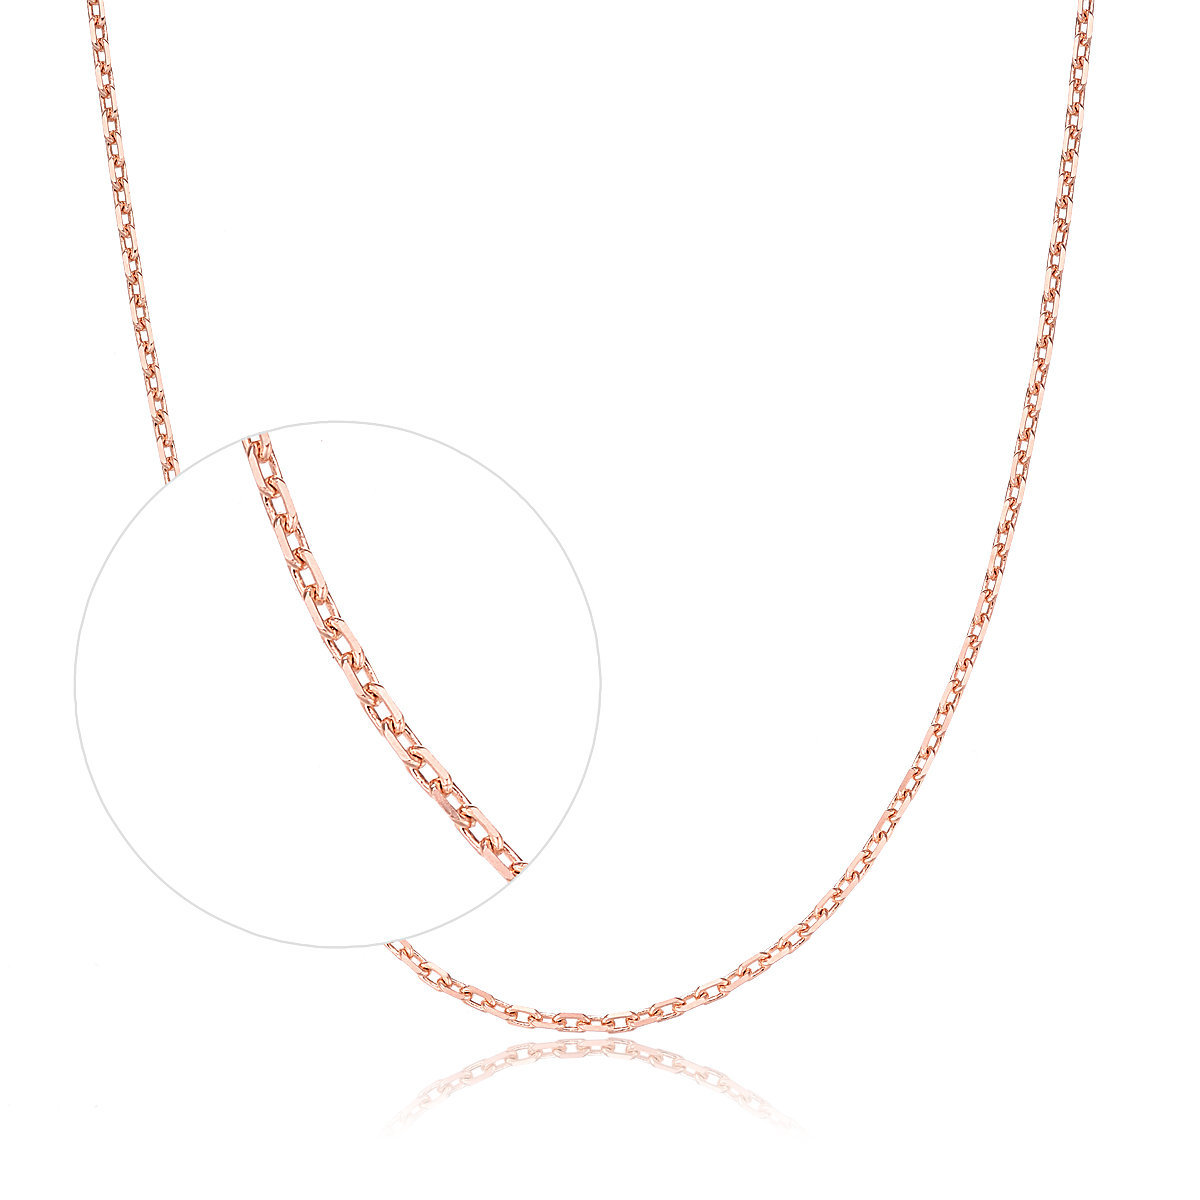 18K/750 Rose Gold Necklace